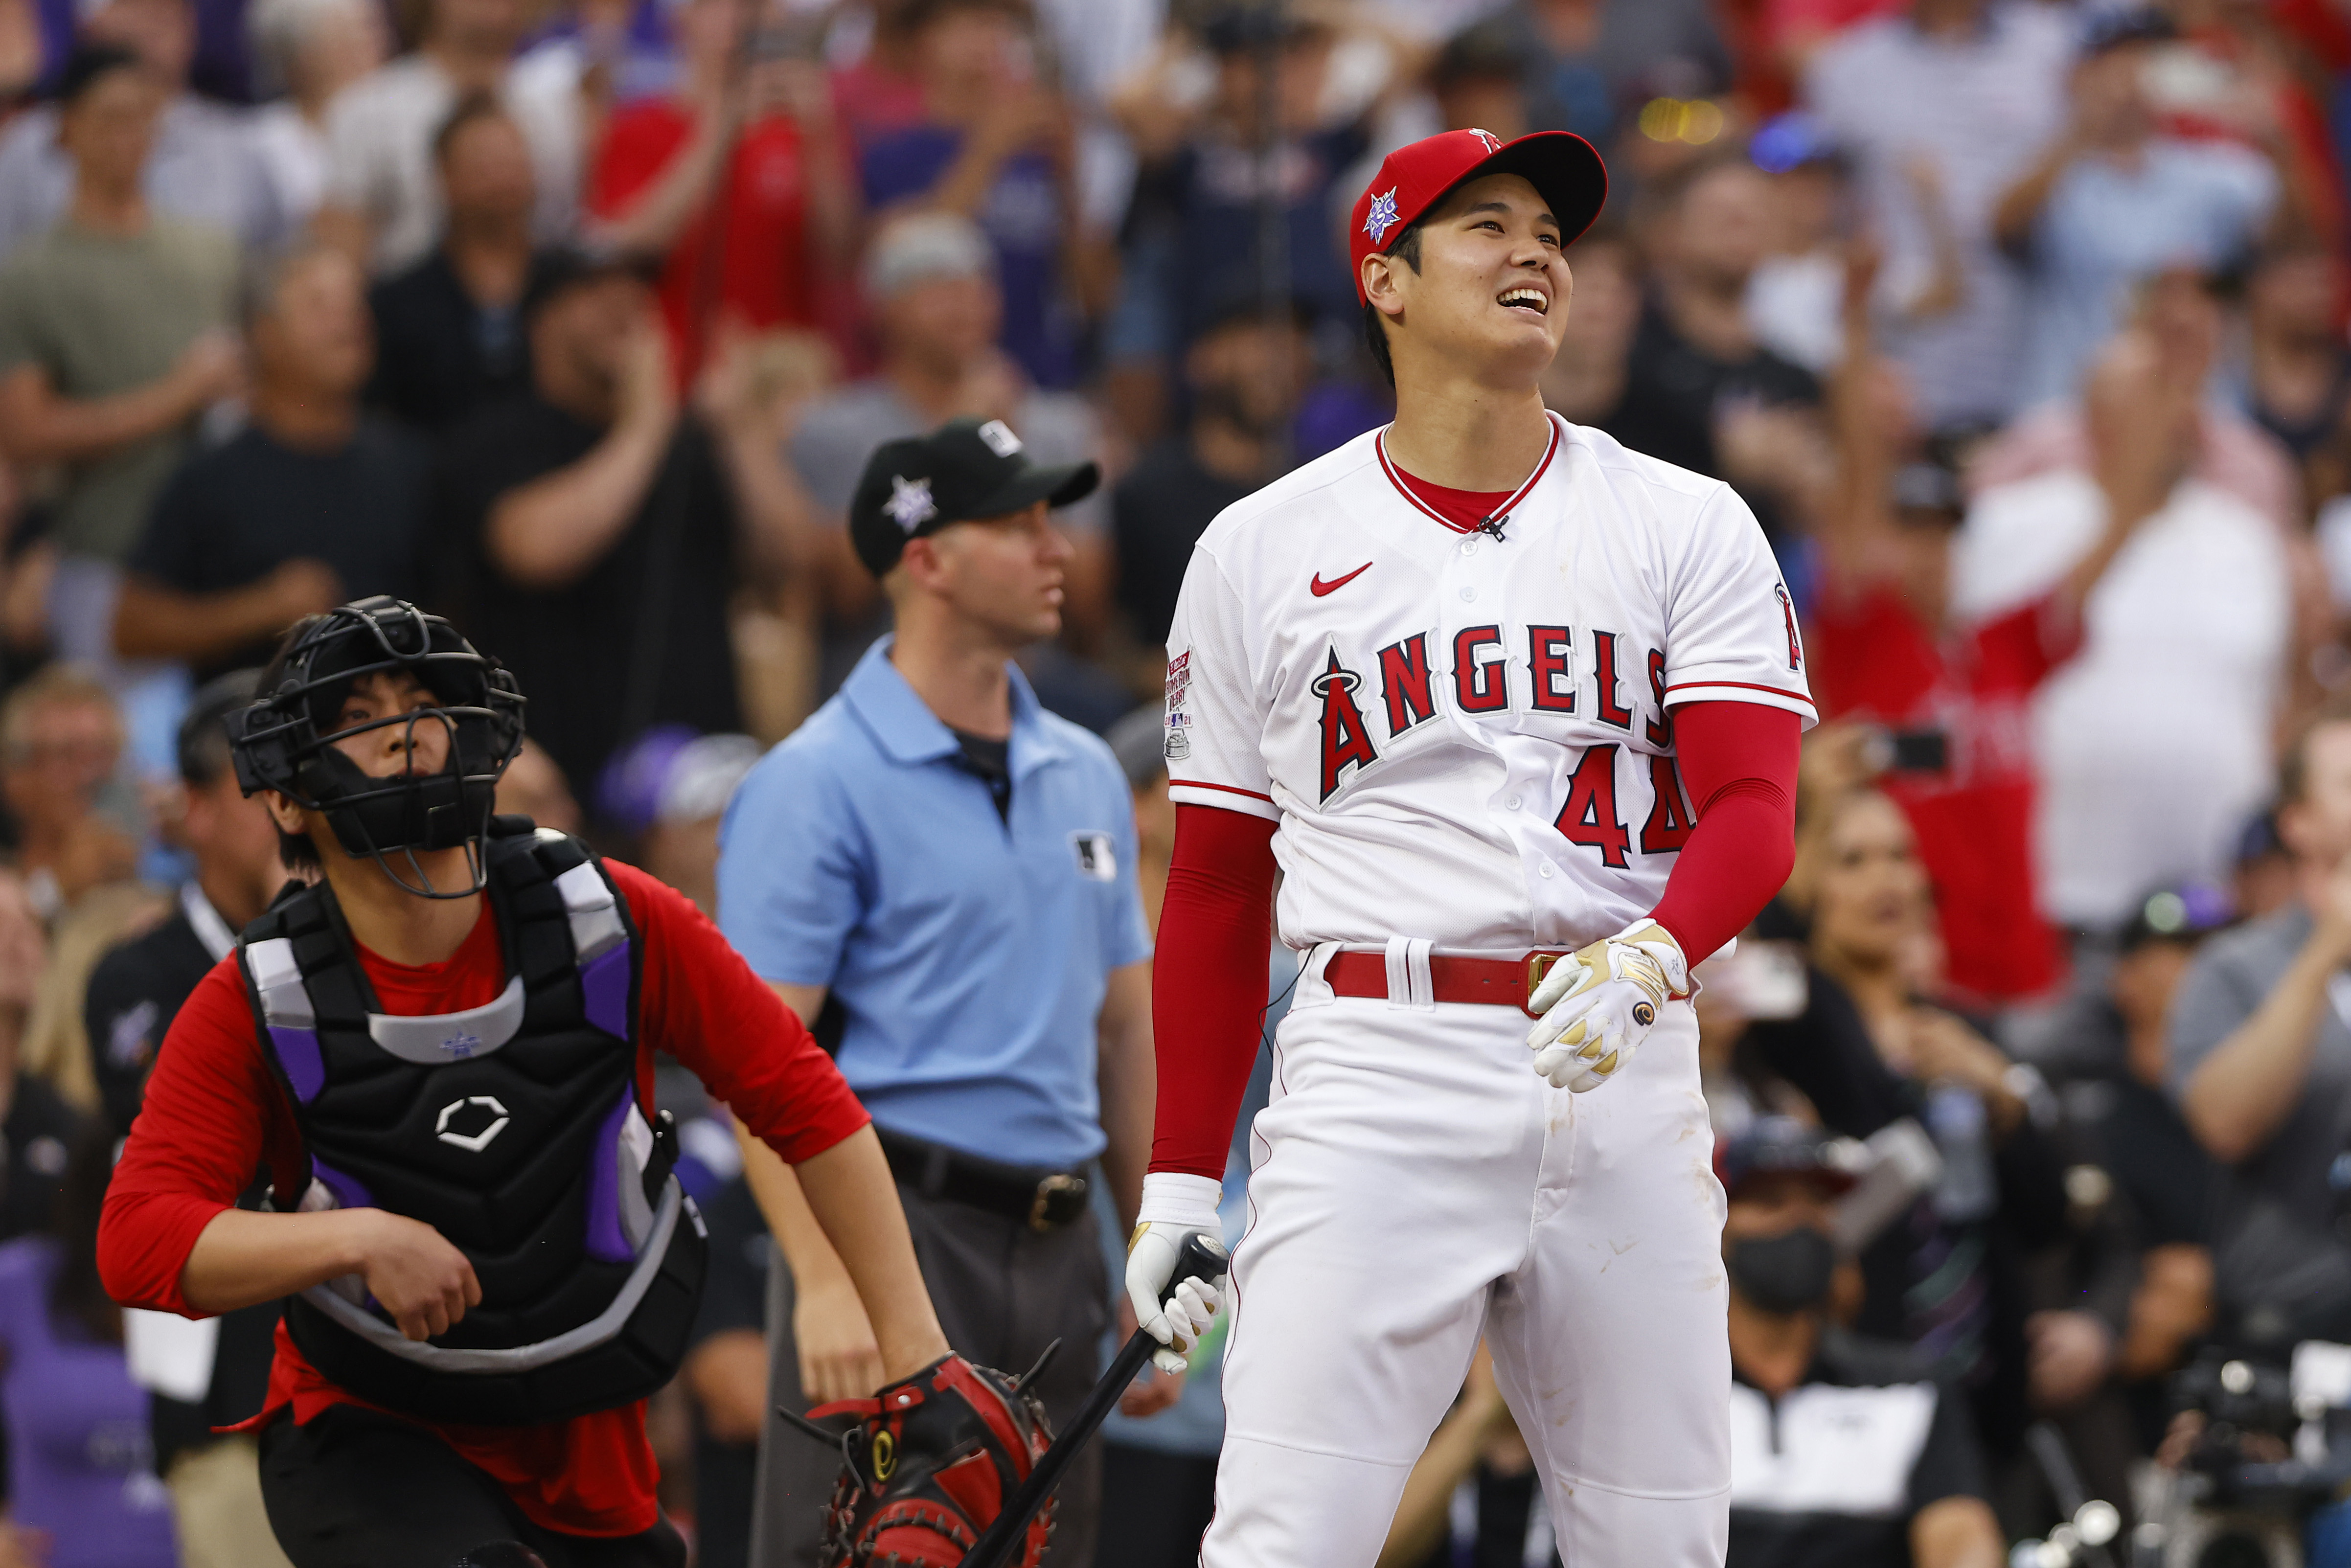 Shohei Ohtani #17 of the Los Angeles Angels reacts during the 2021 T-Mobile Home Run Derby at Coors Field on July 12, 2021 in Denver, Colorado.